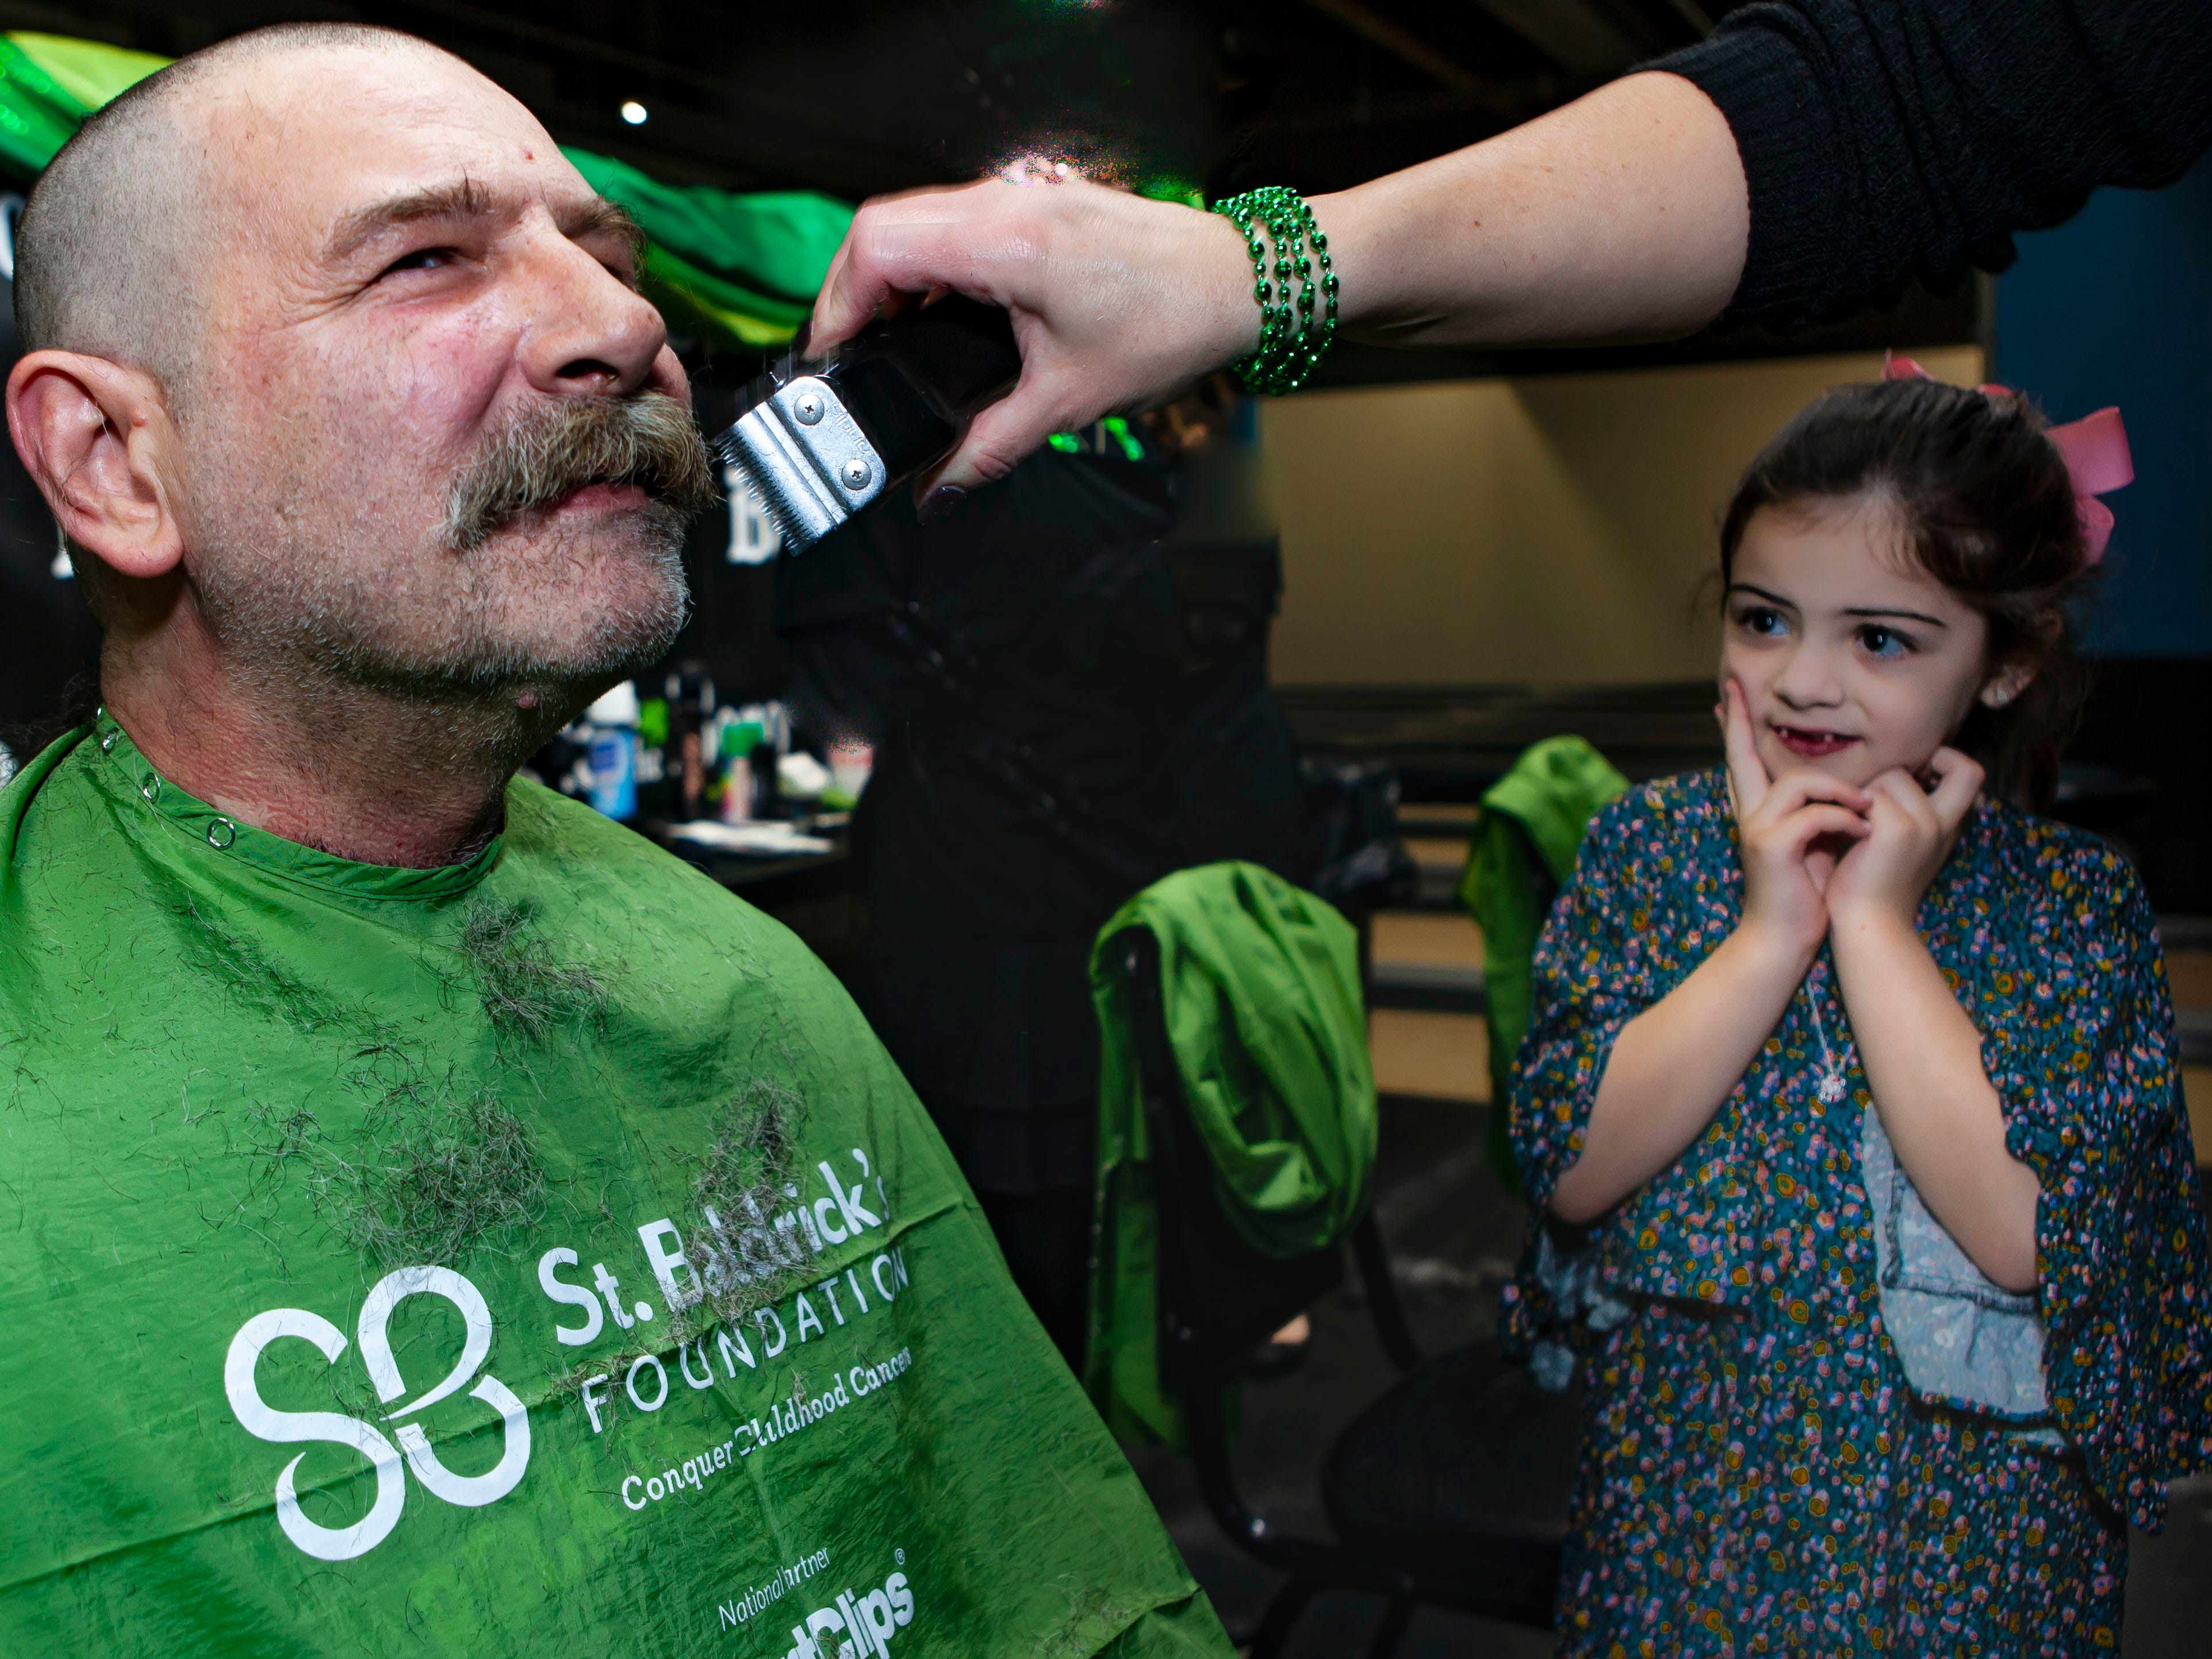 Sadie Smith, one of the children honored at the ninth annual Bald in the Boro, watches as Tracy Terral finishes his turn in the chair. Smith fought cancer at age 3 and is a kindergarten student at Buchanan Elementary. The St. Baldrick's Foundation fundraiser was held Friday, March 15, 2019 at Lanes, Trains and Automobiles in Murfreesboro.